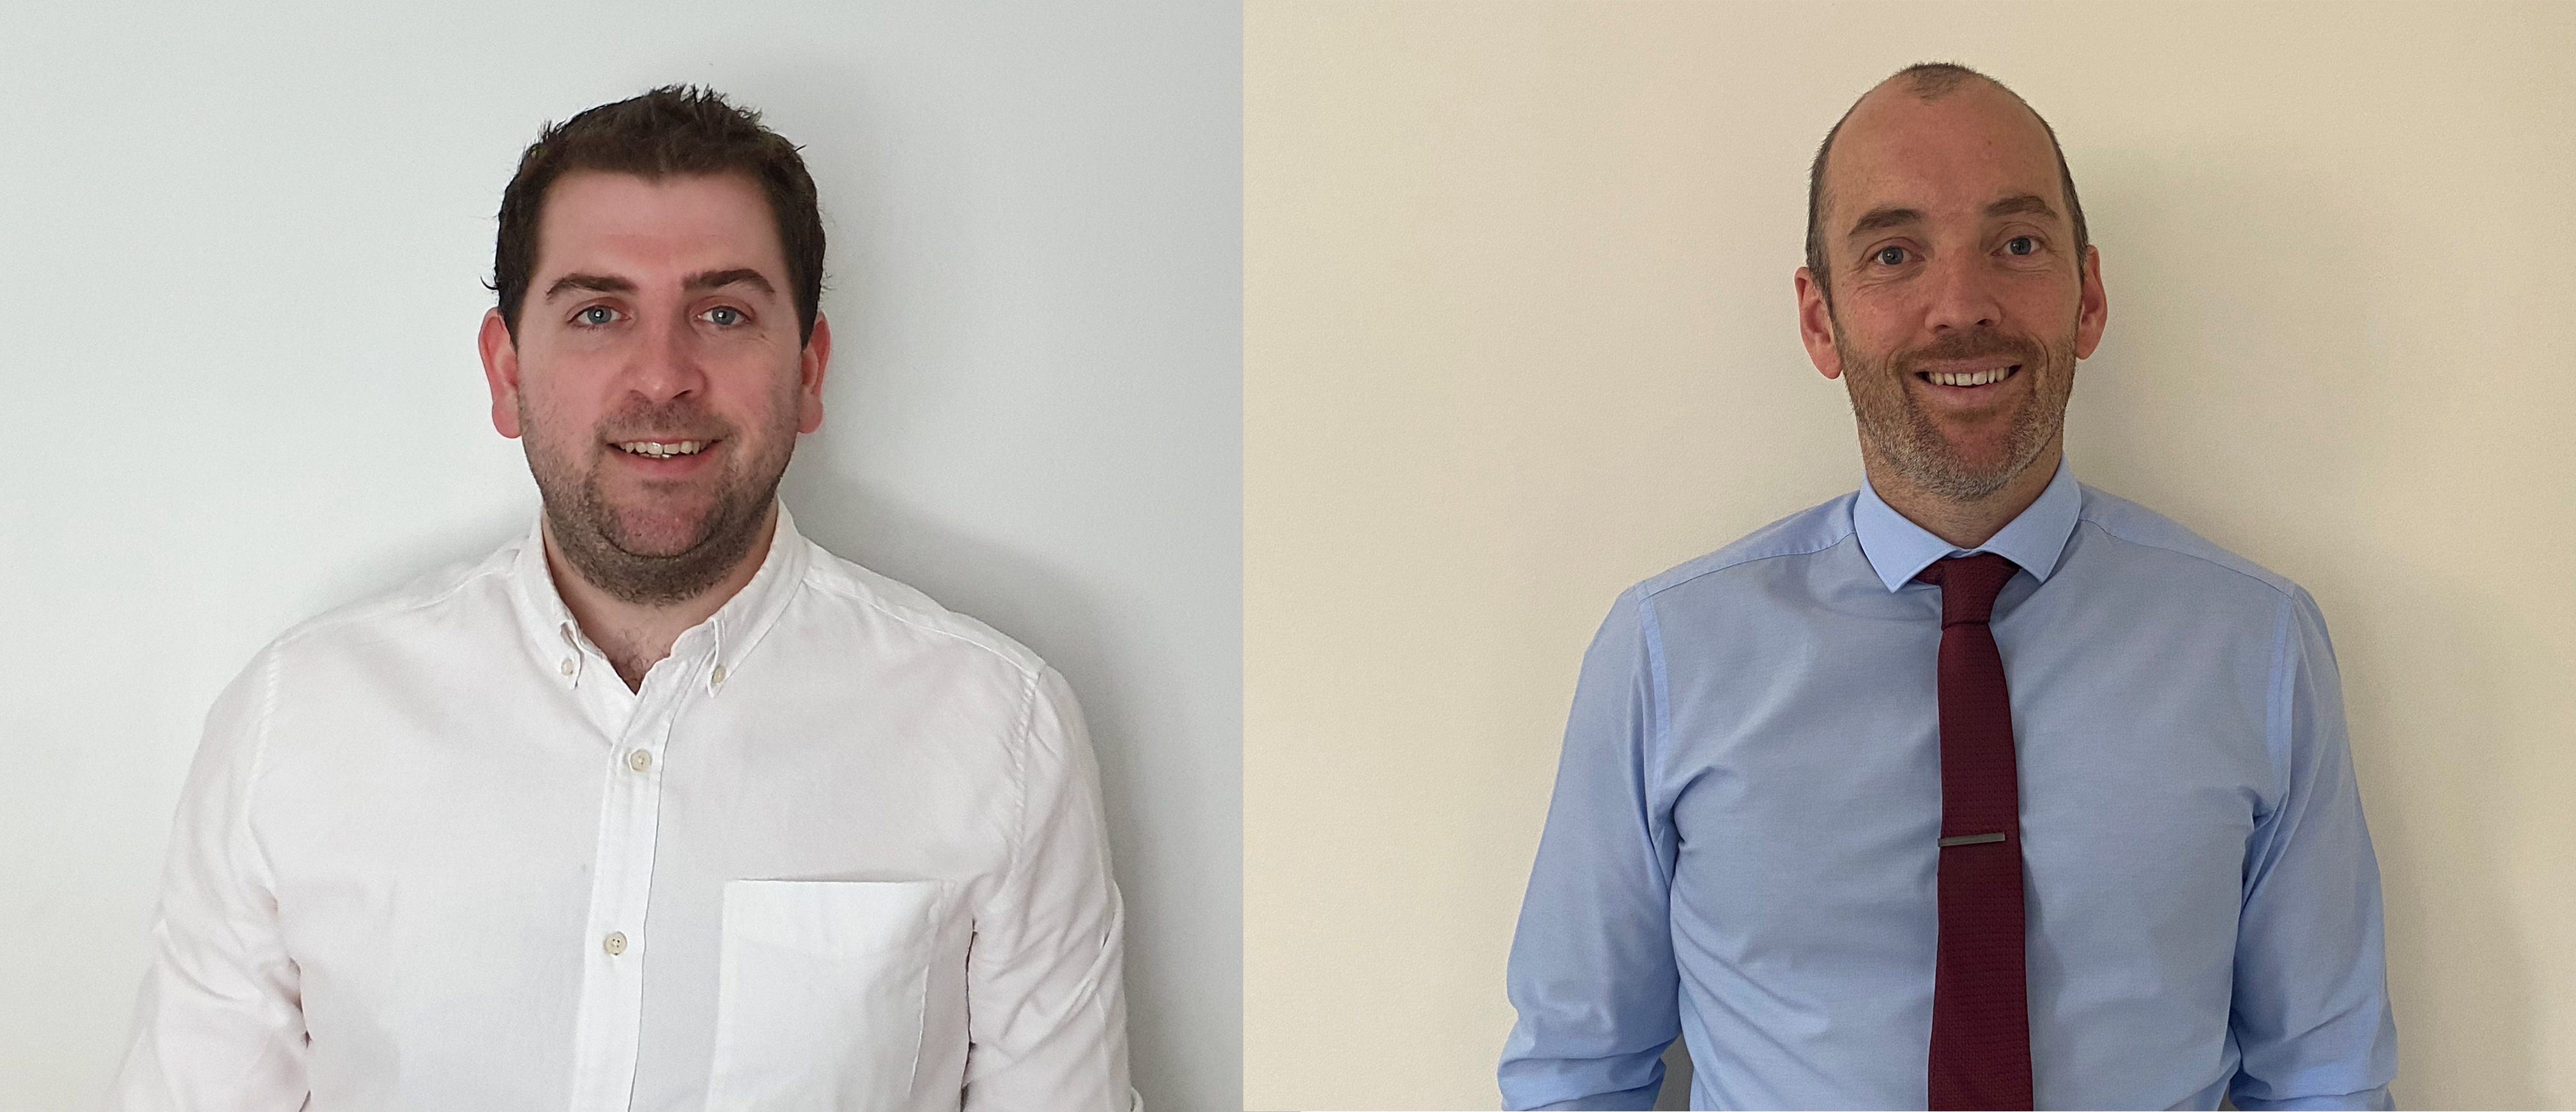 From left to right - Chris Jeacott, Business Development Manager, London and South East and Jon Parry, Business Development Manager, South and West Wales